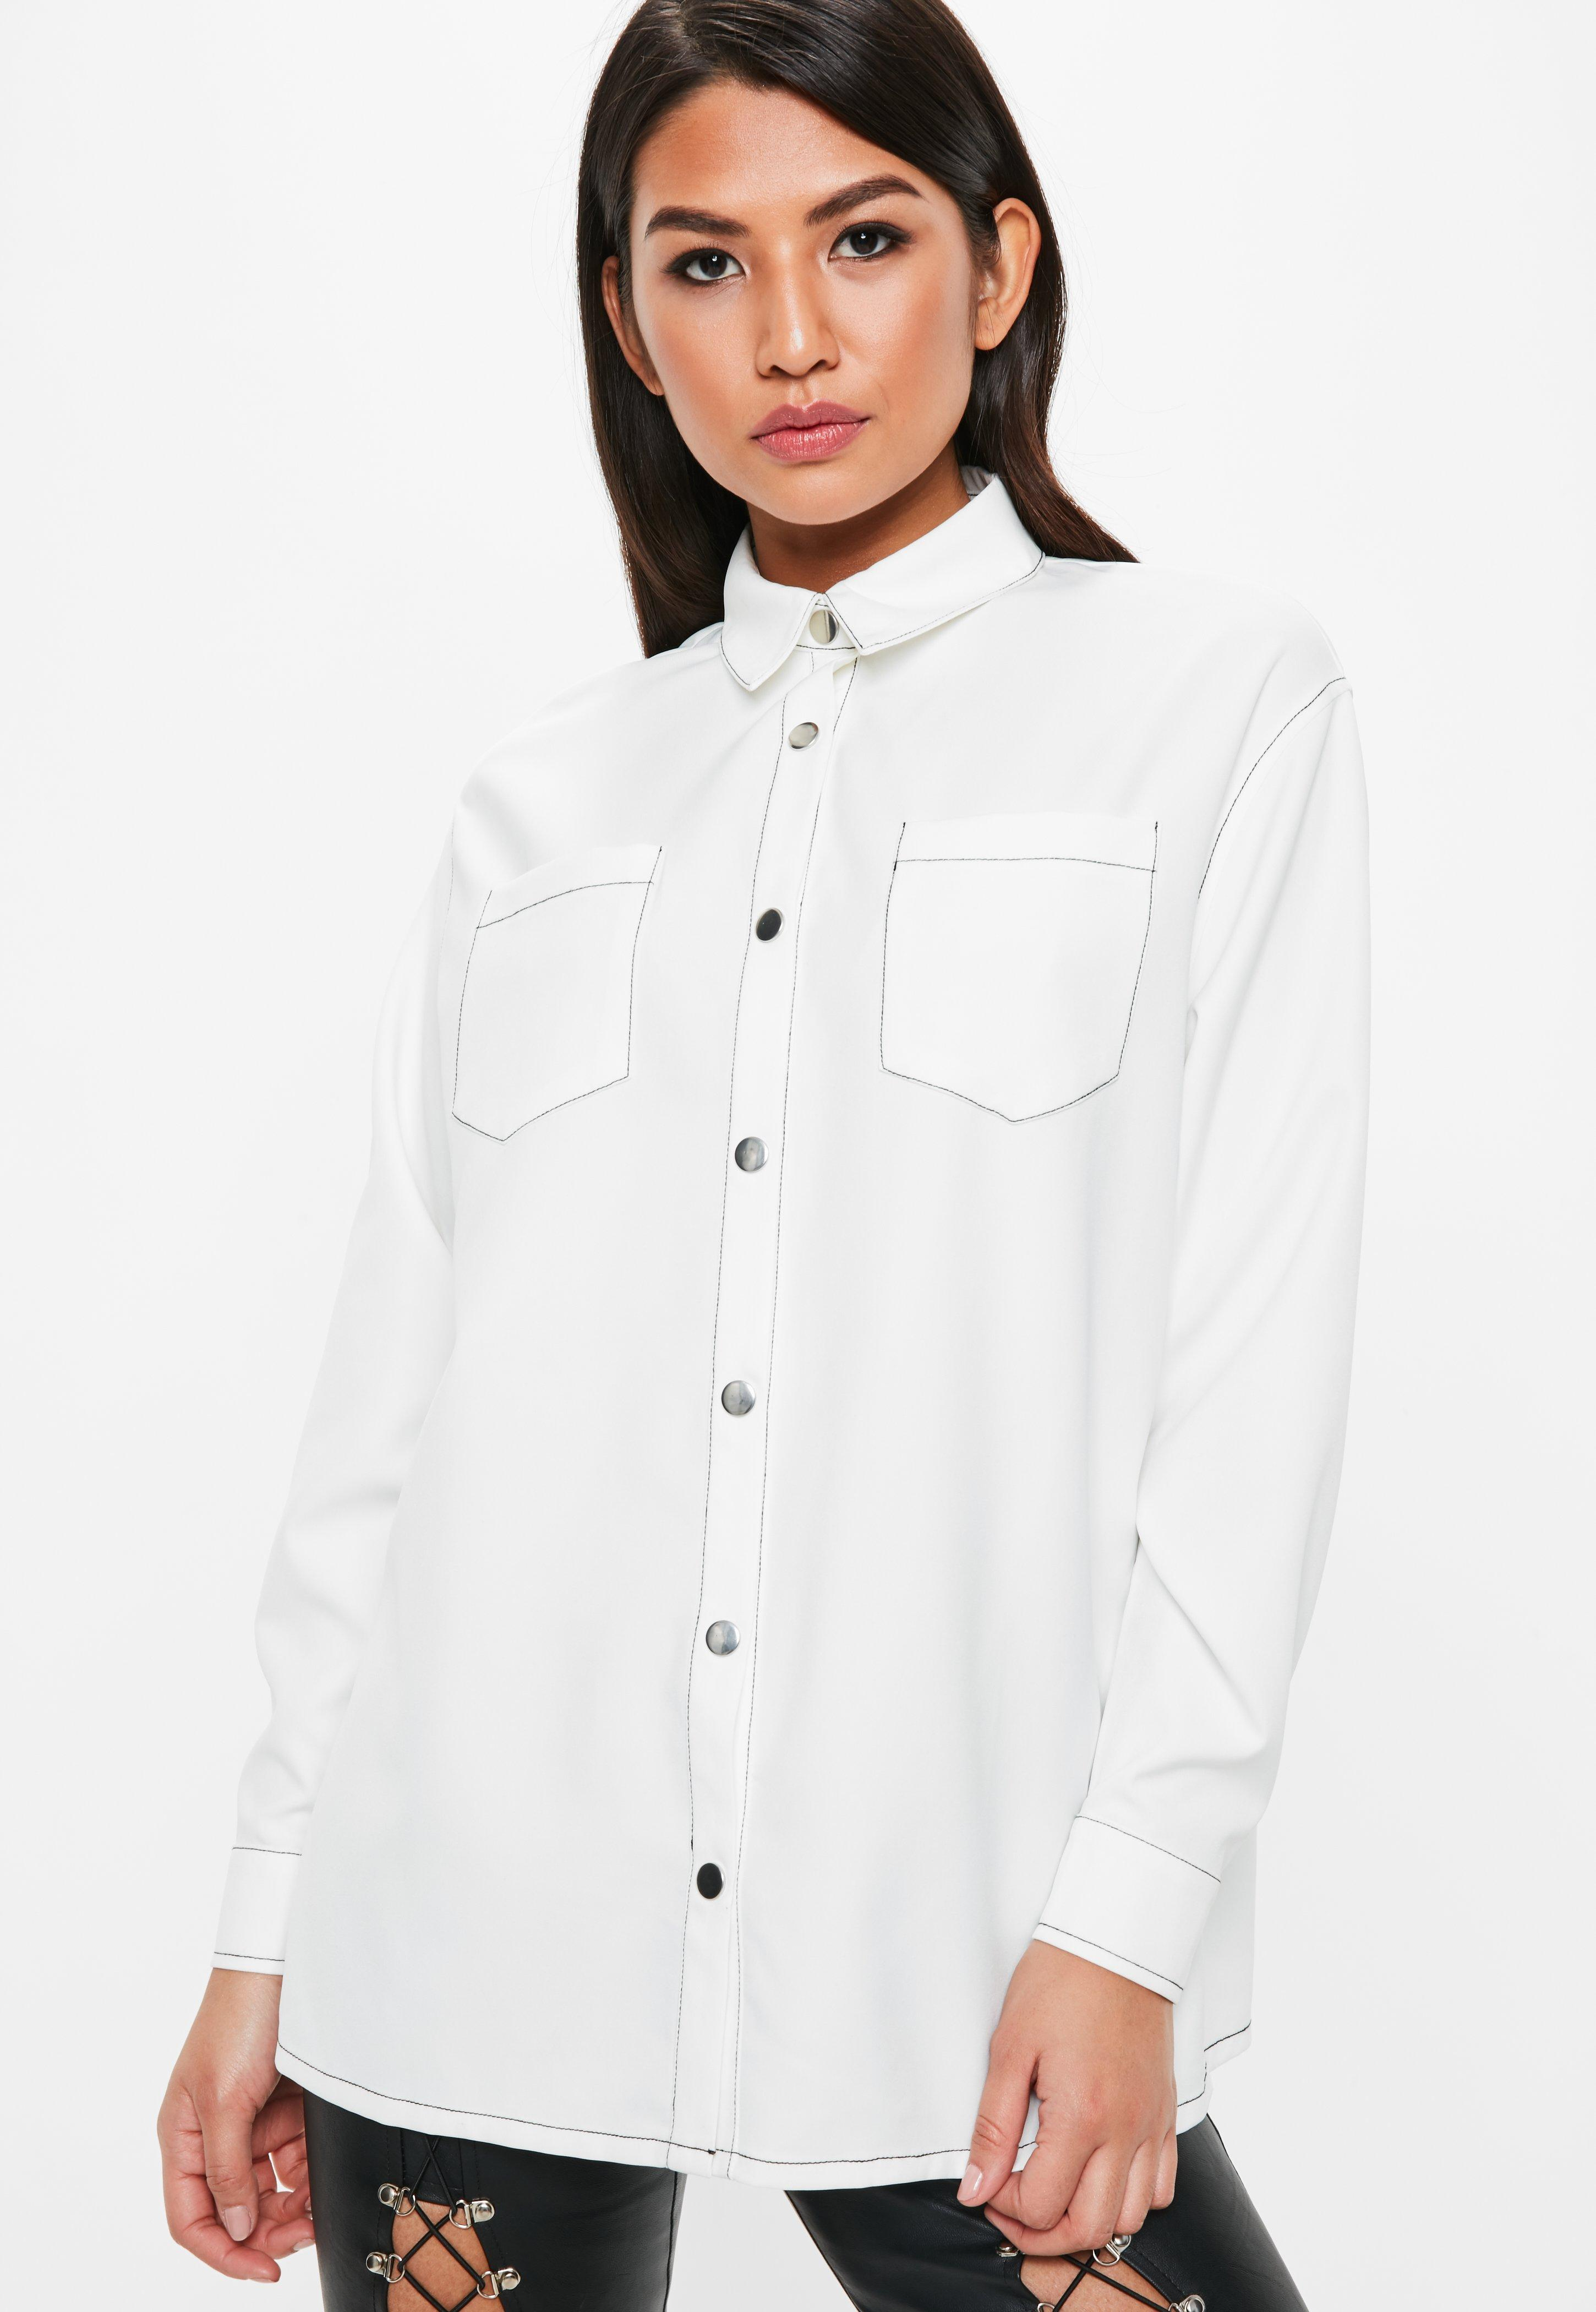 Missguided Long Sleeve Contrast Stitch Shirt Cheap Sale From China Cheap Sale Low Cost Buy Cheap 2018 Newest Genuine Order For Sale BE2N3v